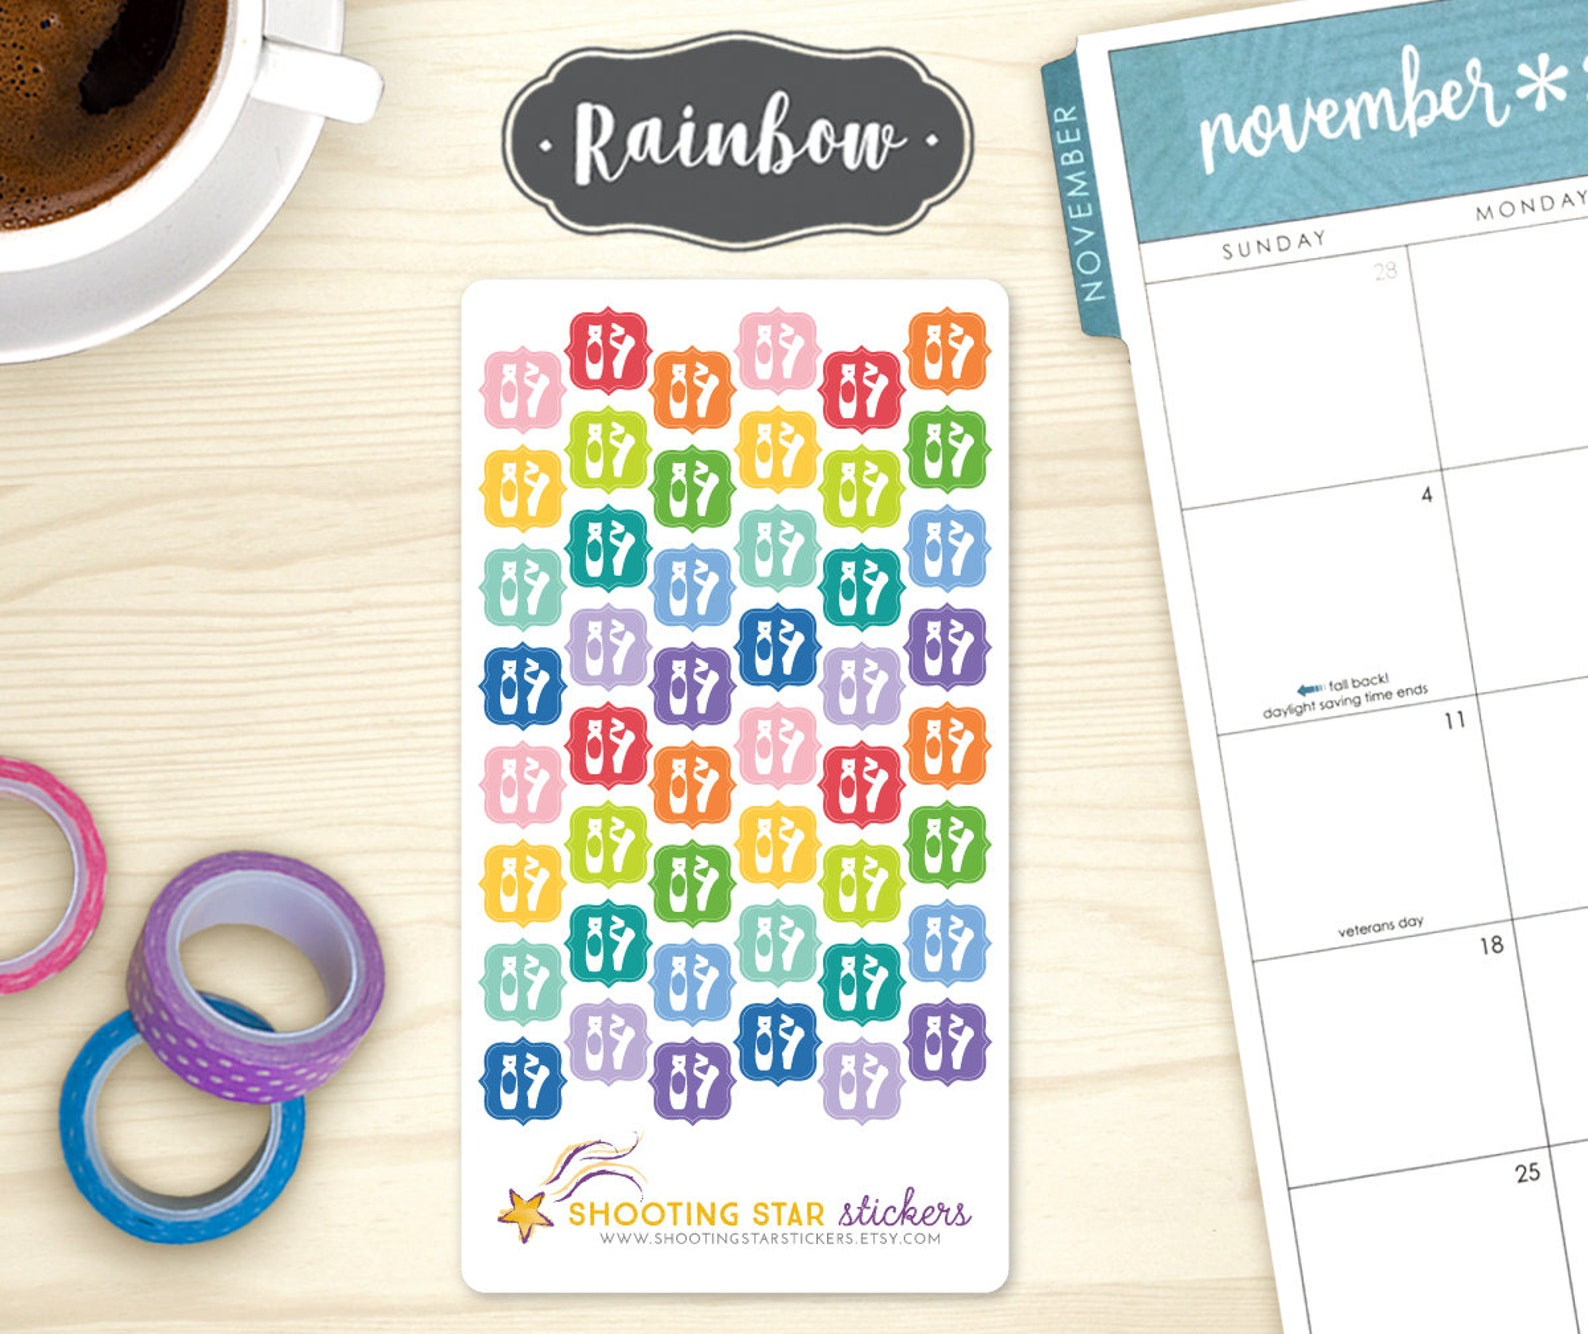 dance planner stickers - ballet shoes icons, 48 dance class reminder stickers, ballerina, lessons, rehearsal, show tracking, ecl